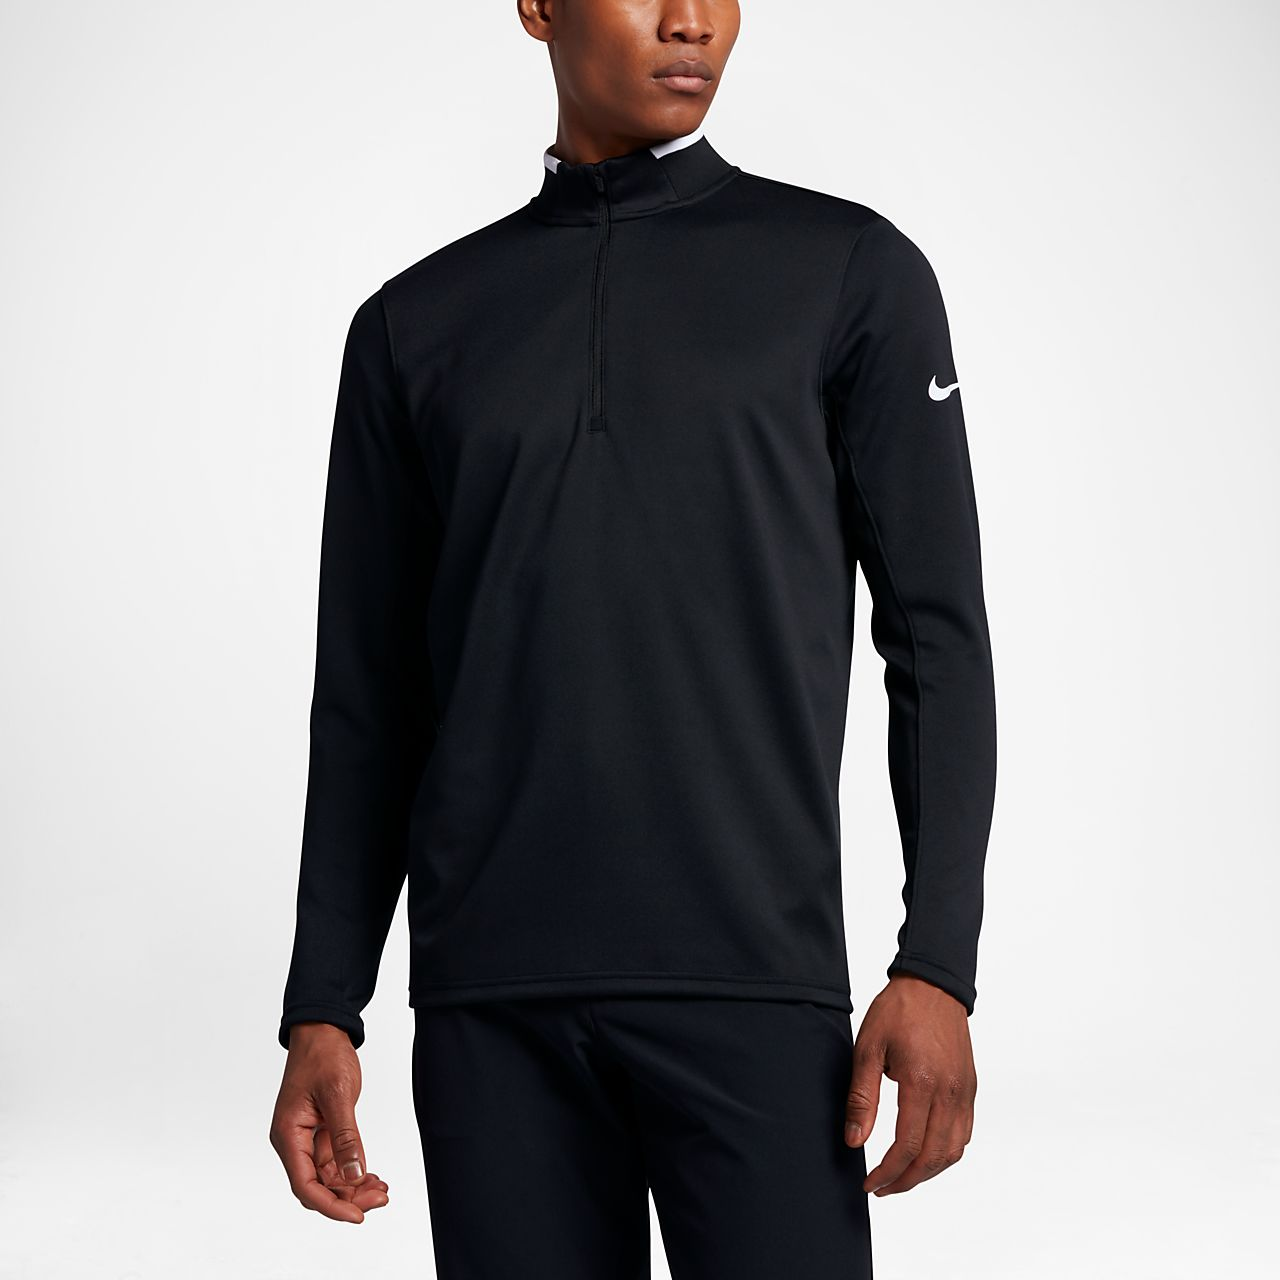 ... Nike Dri-FIT Half-Zip Men's Long-Sleeve Golf Top